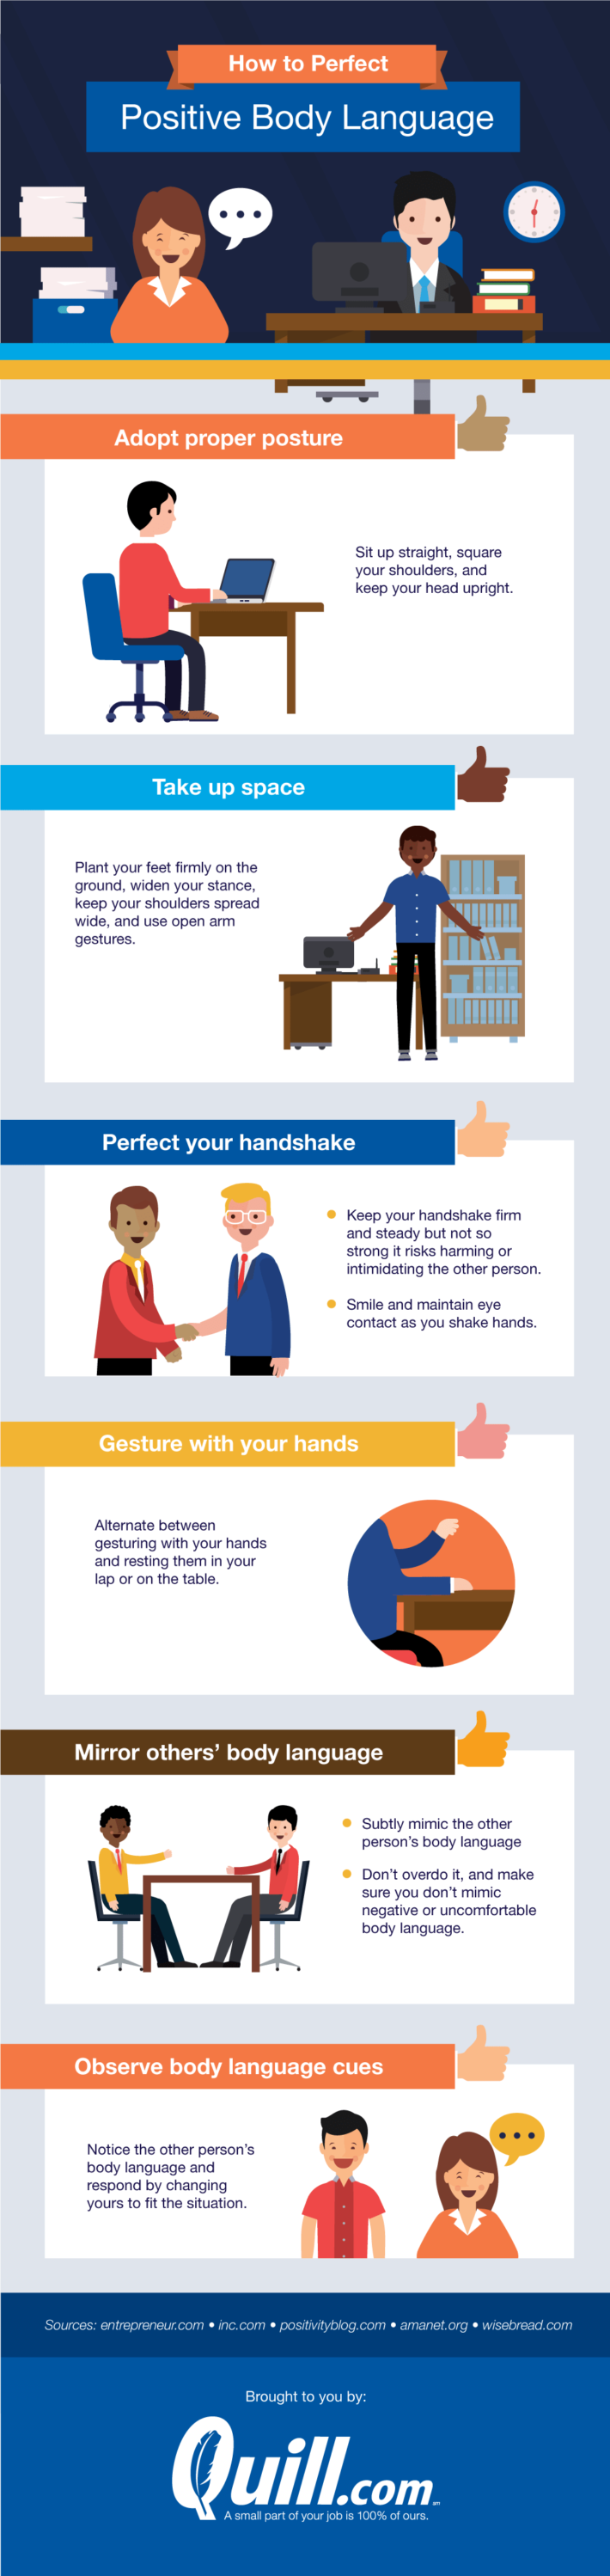 Tips on how to read body language in the workplace